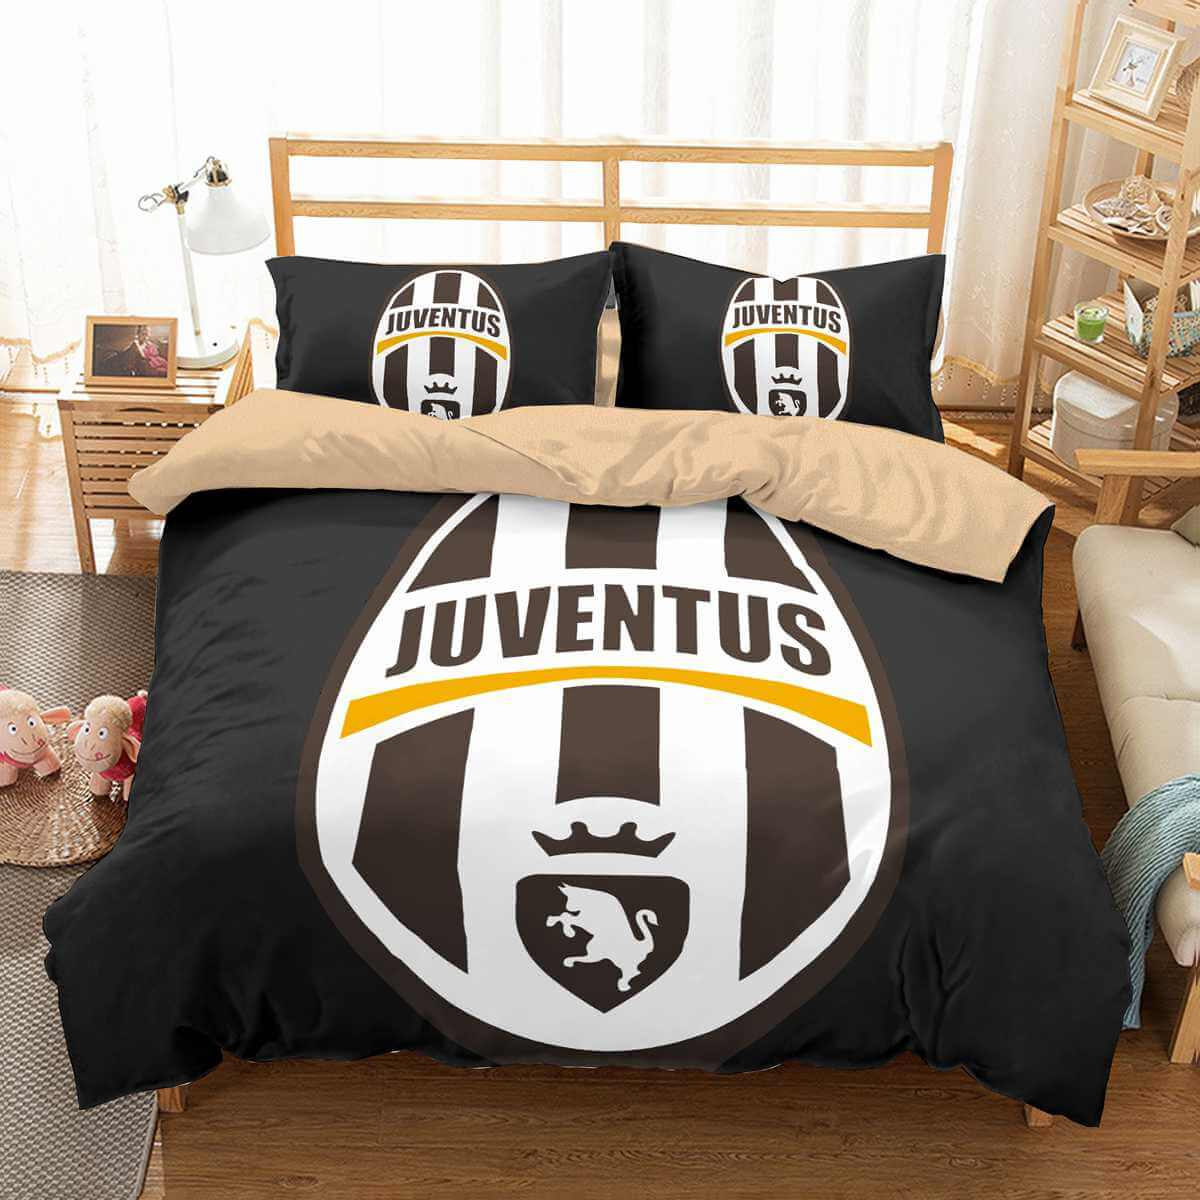 3d Customize Juventus Bedding Set Duvet Cover Set Bedroom Set Bedlinen Three Lemons Hometextile